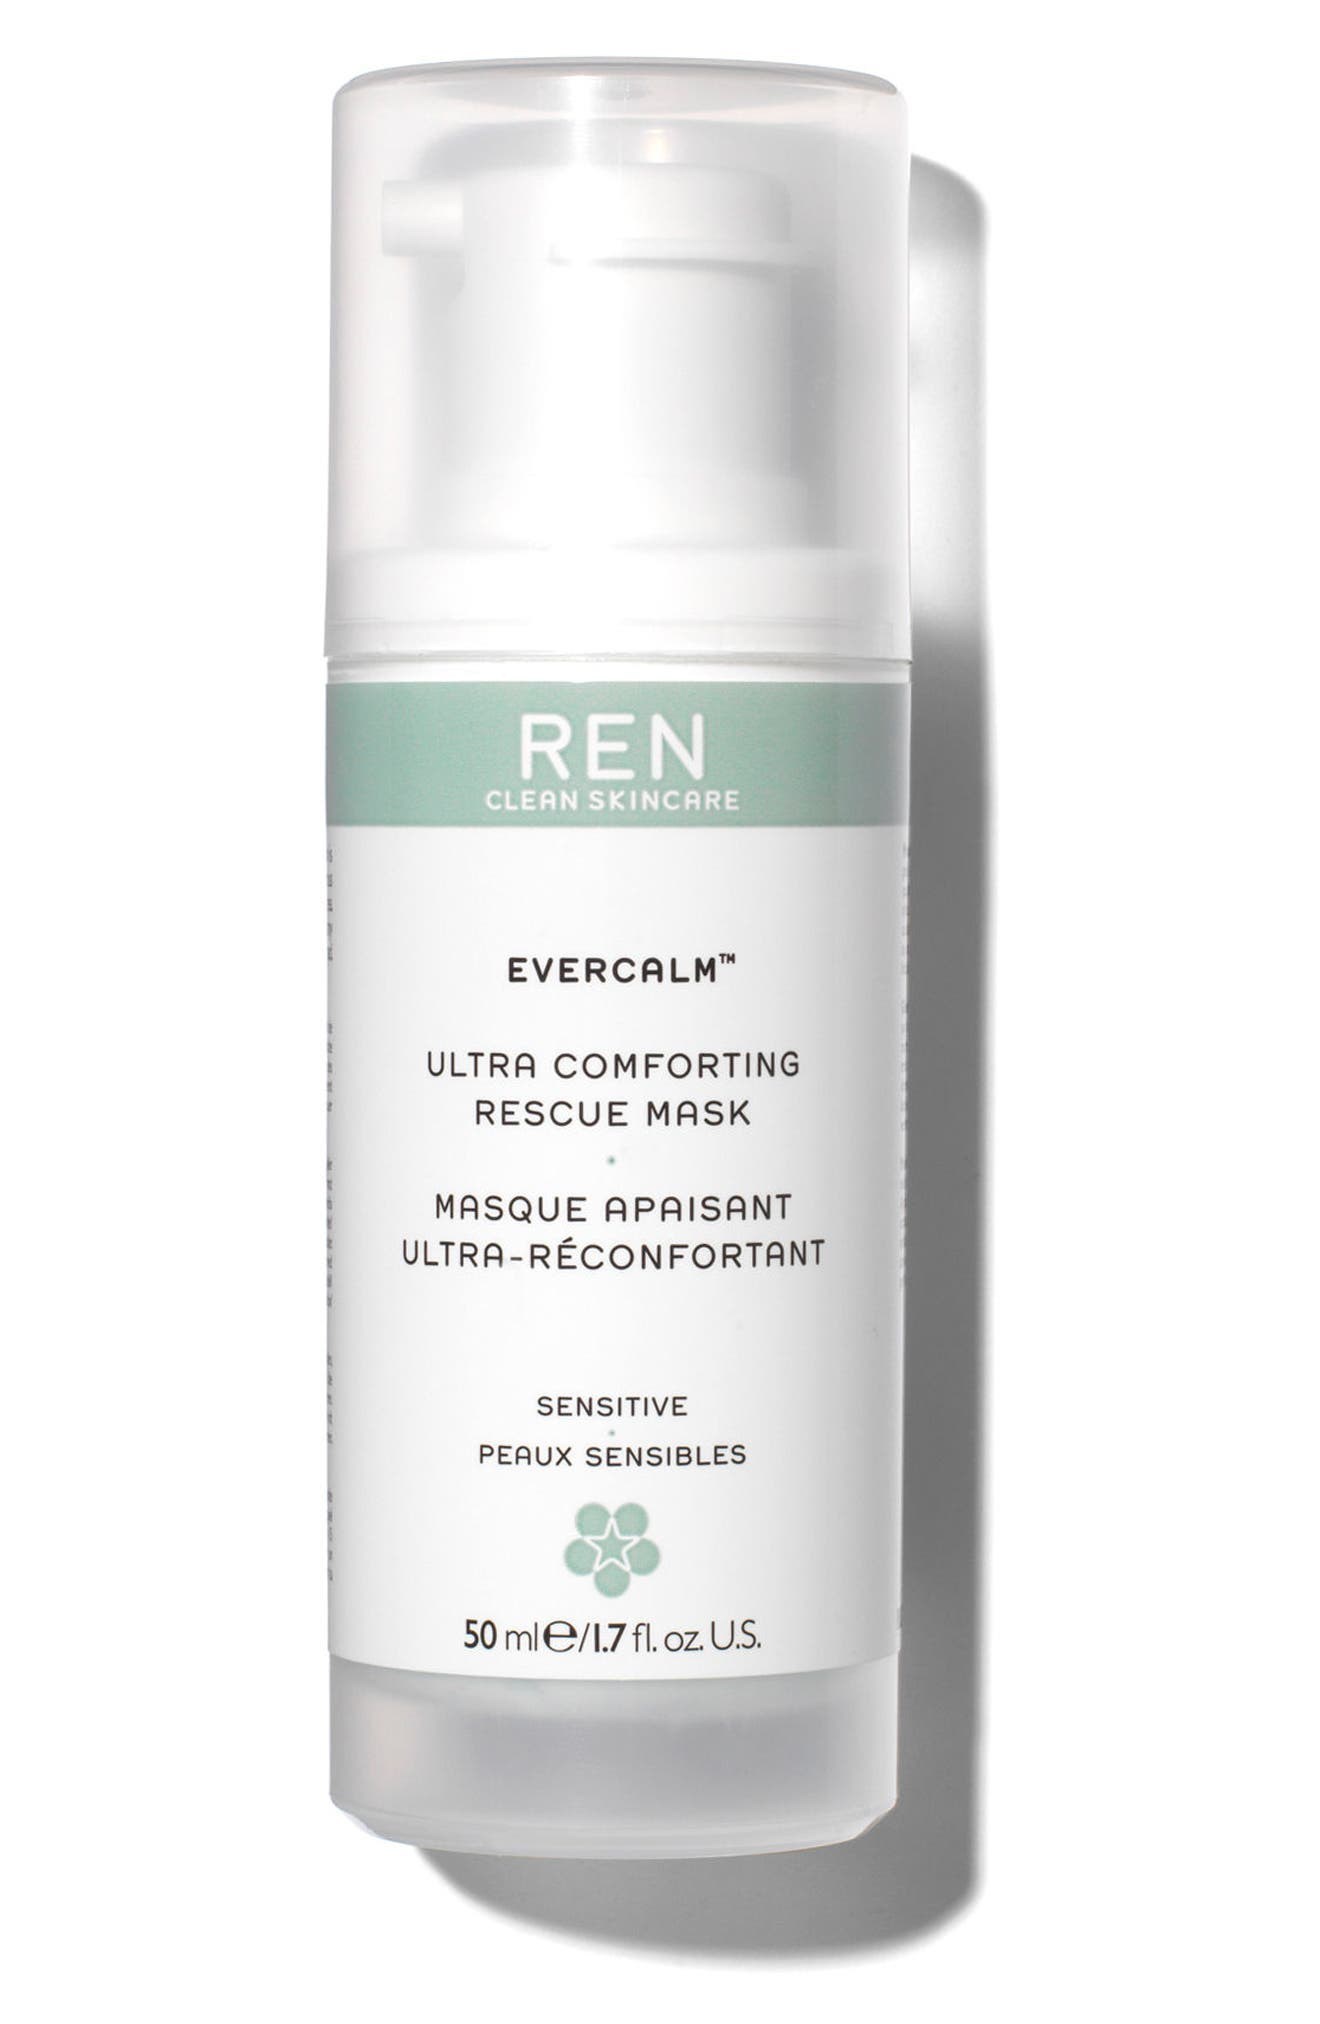 Alternate Image 1 Selected - SPACE.NK.apothecary REN Evercalm™ Rescue Mask